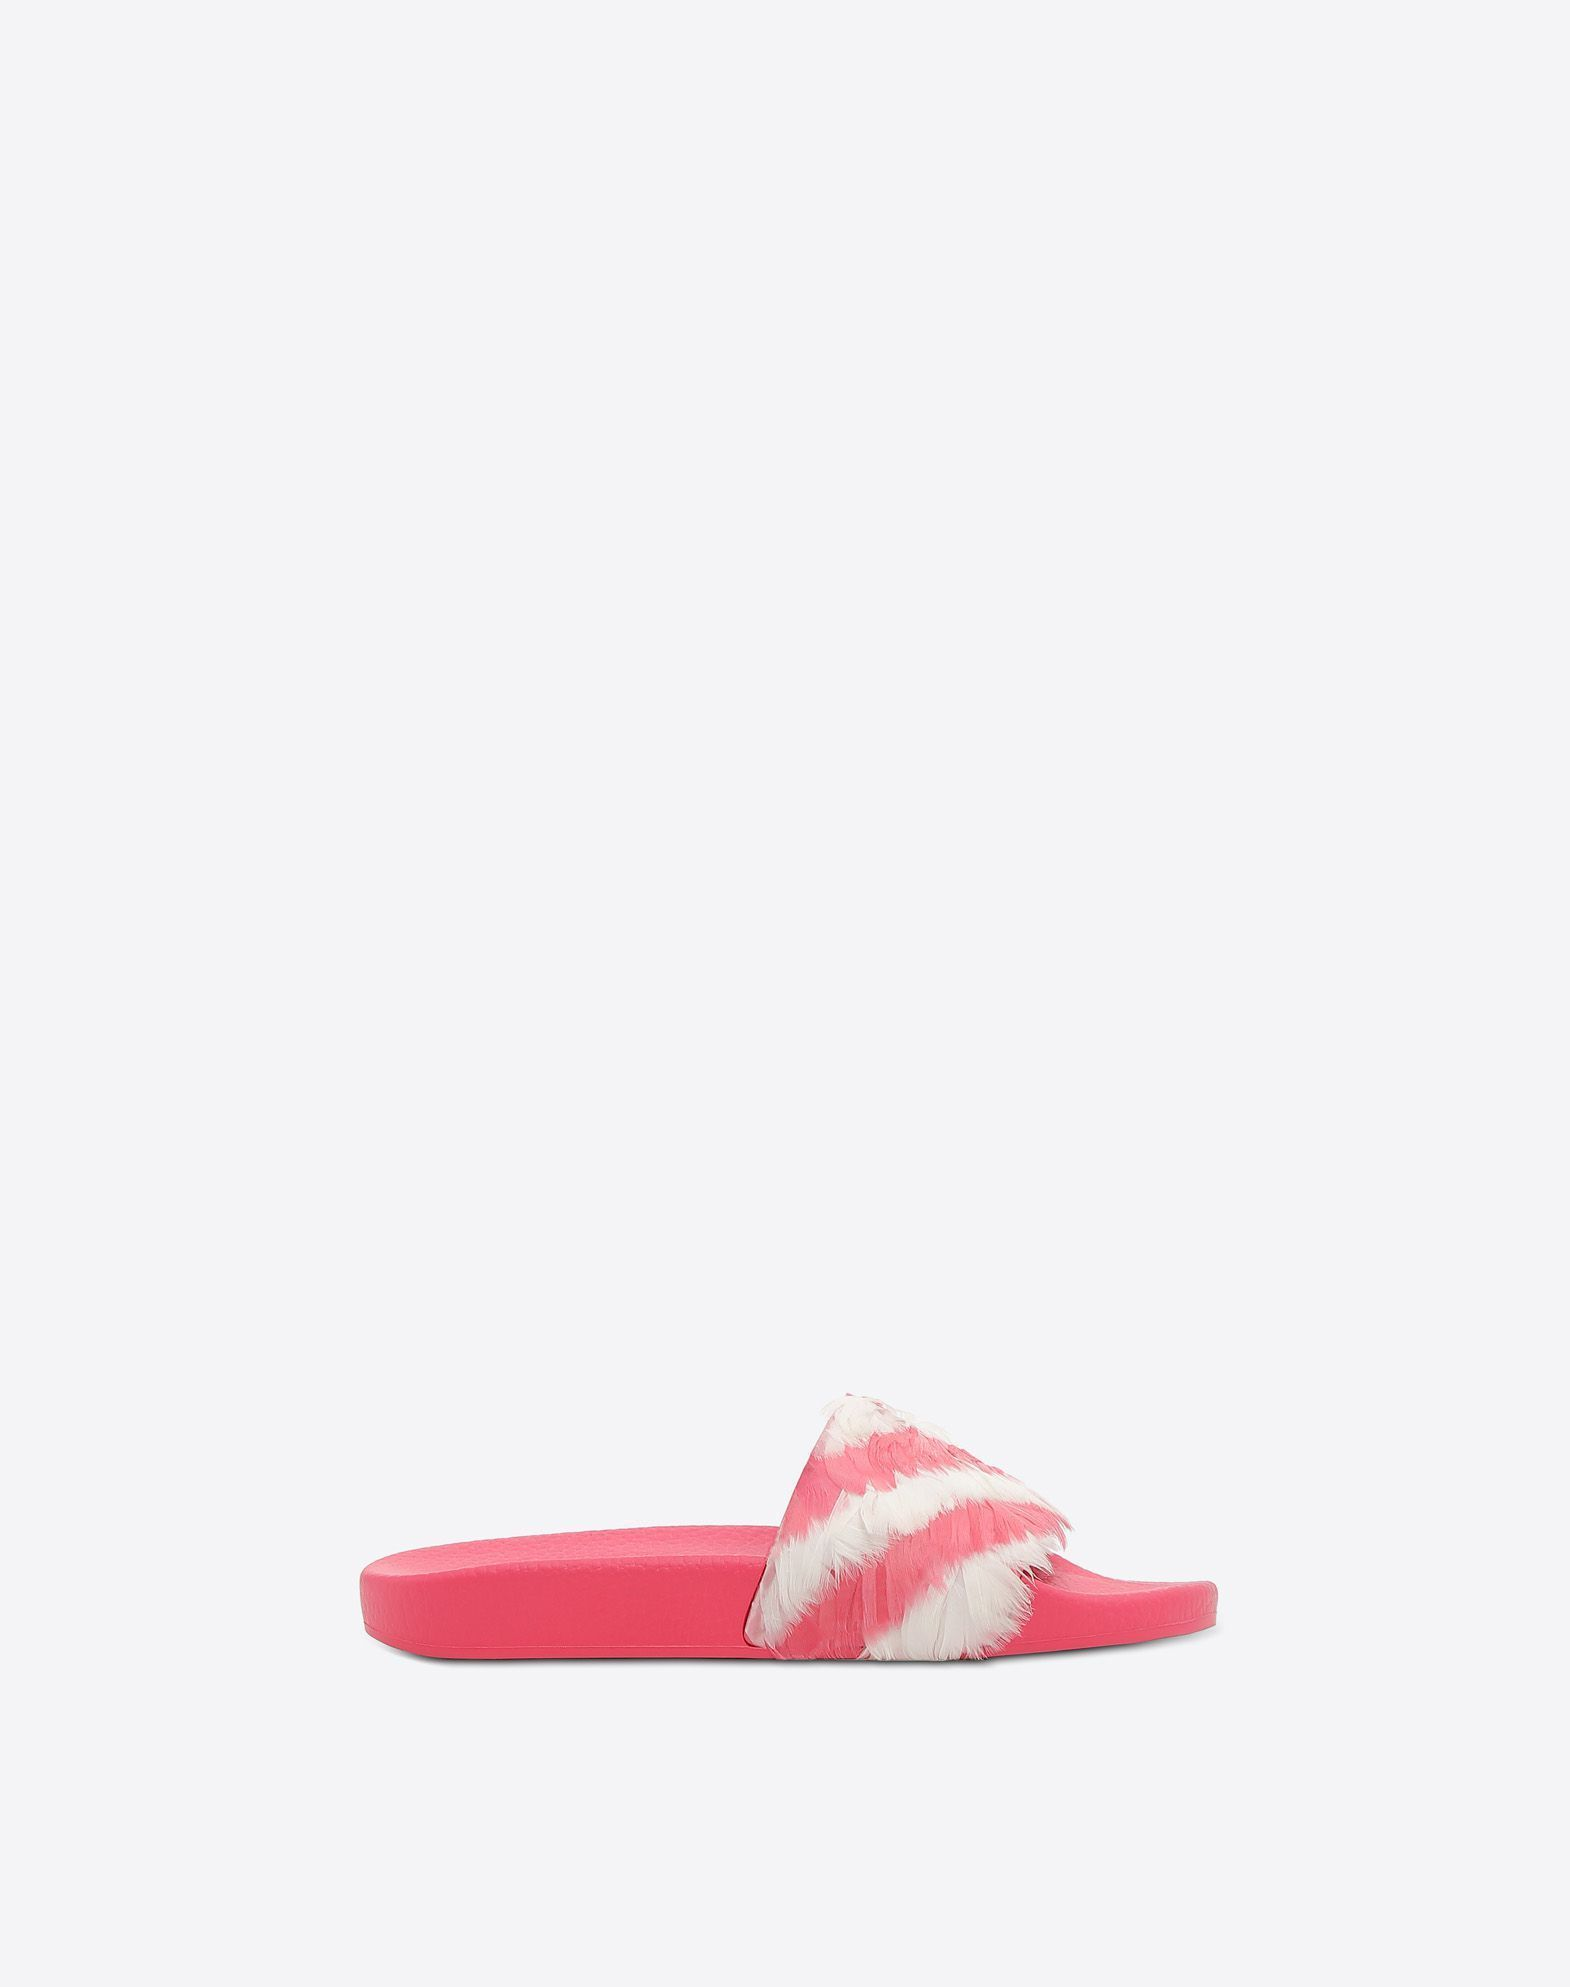 【17AW NEW】VALENTINO_women /SLIDE SANDAL WITH FEATHERS/Pink